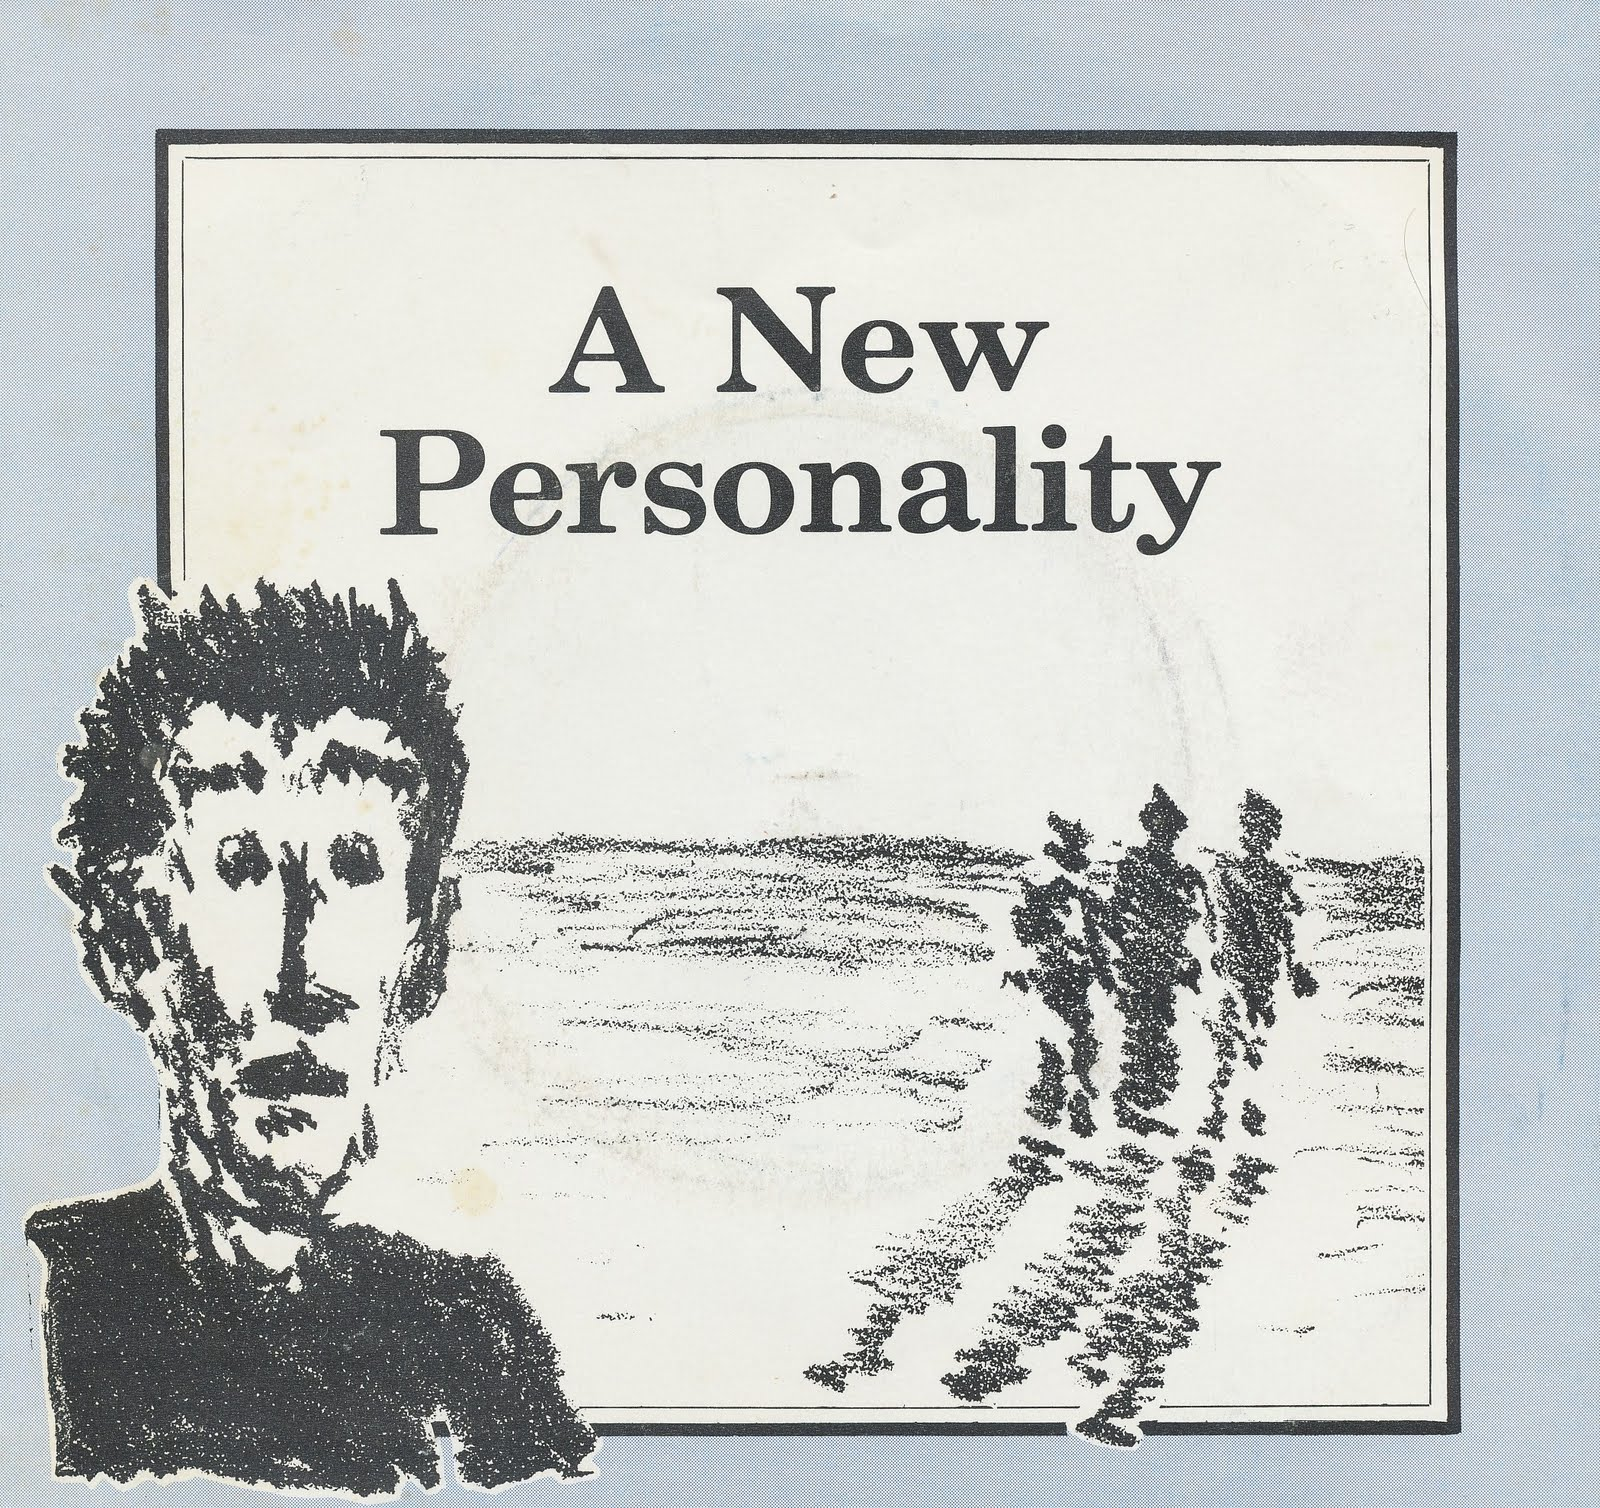 A new personality